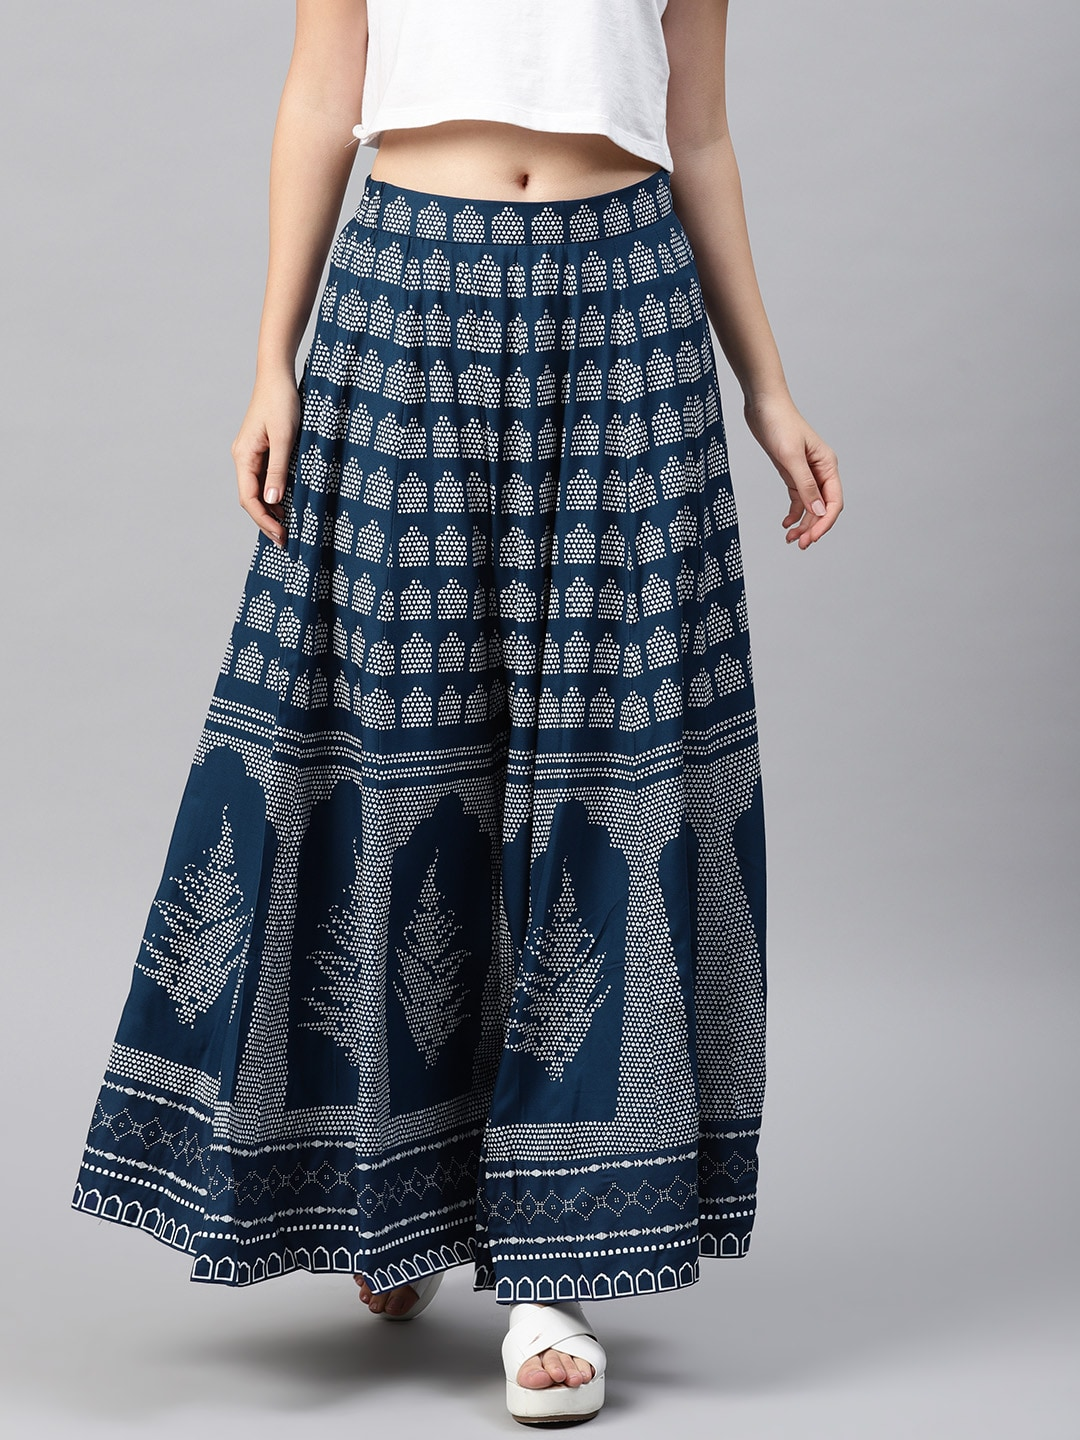 acf63e76aef Flared Skirts Ethnic Skirt - Buy Flared Skirts Ethnic Skirt online in India